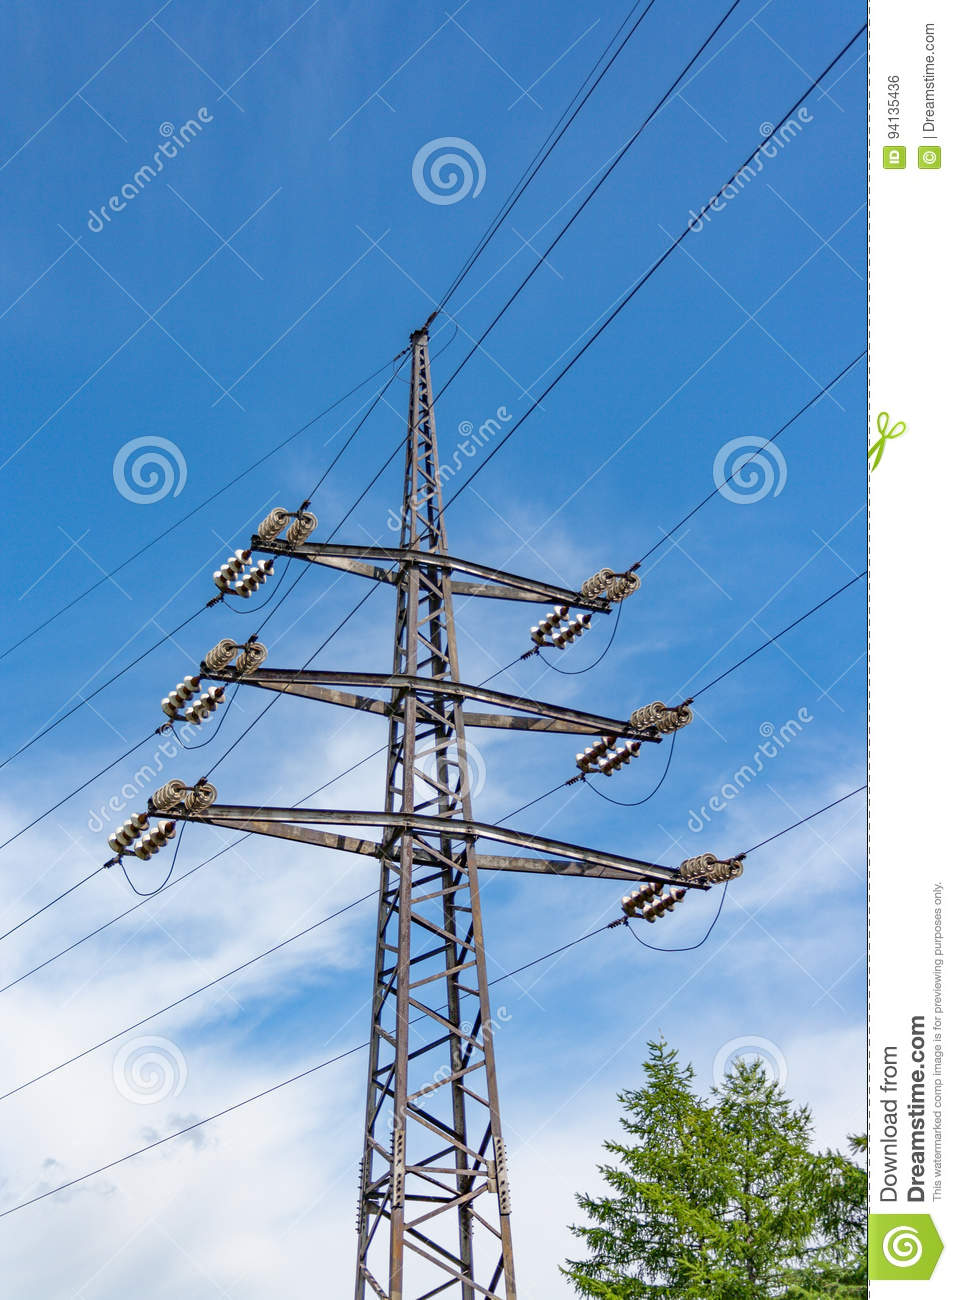 Structure For Holding Wires - Ground Wire Overhead Power Lines Stock ...